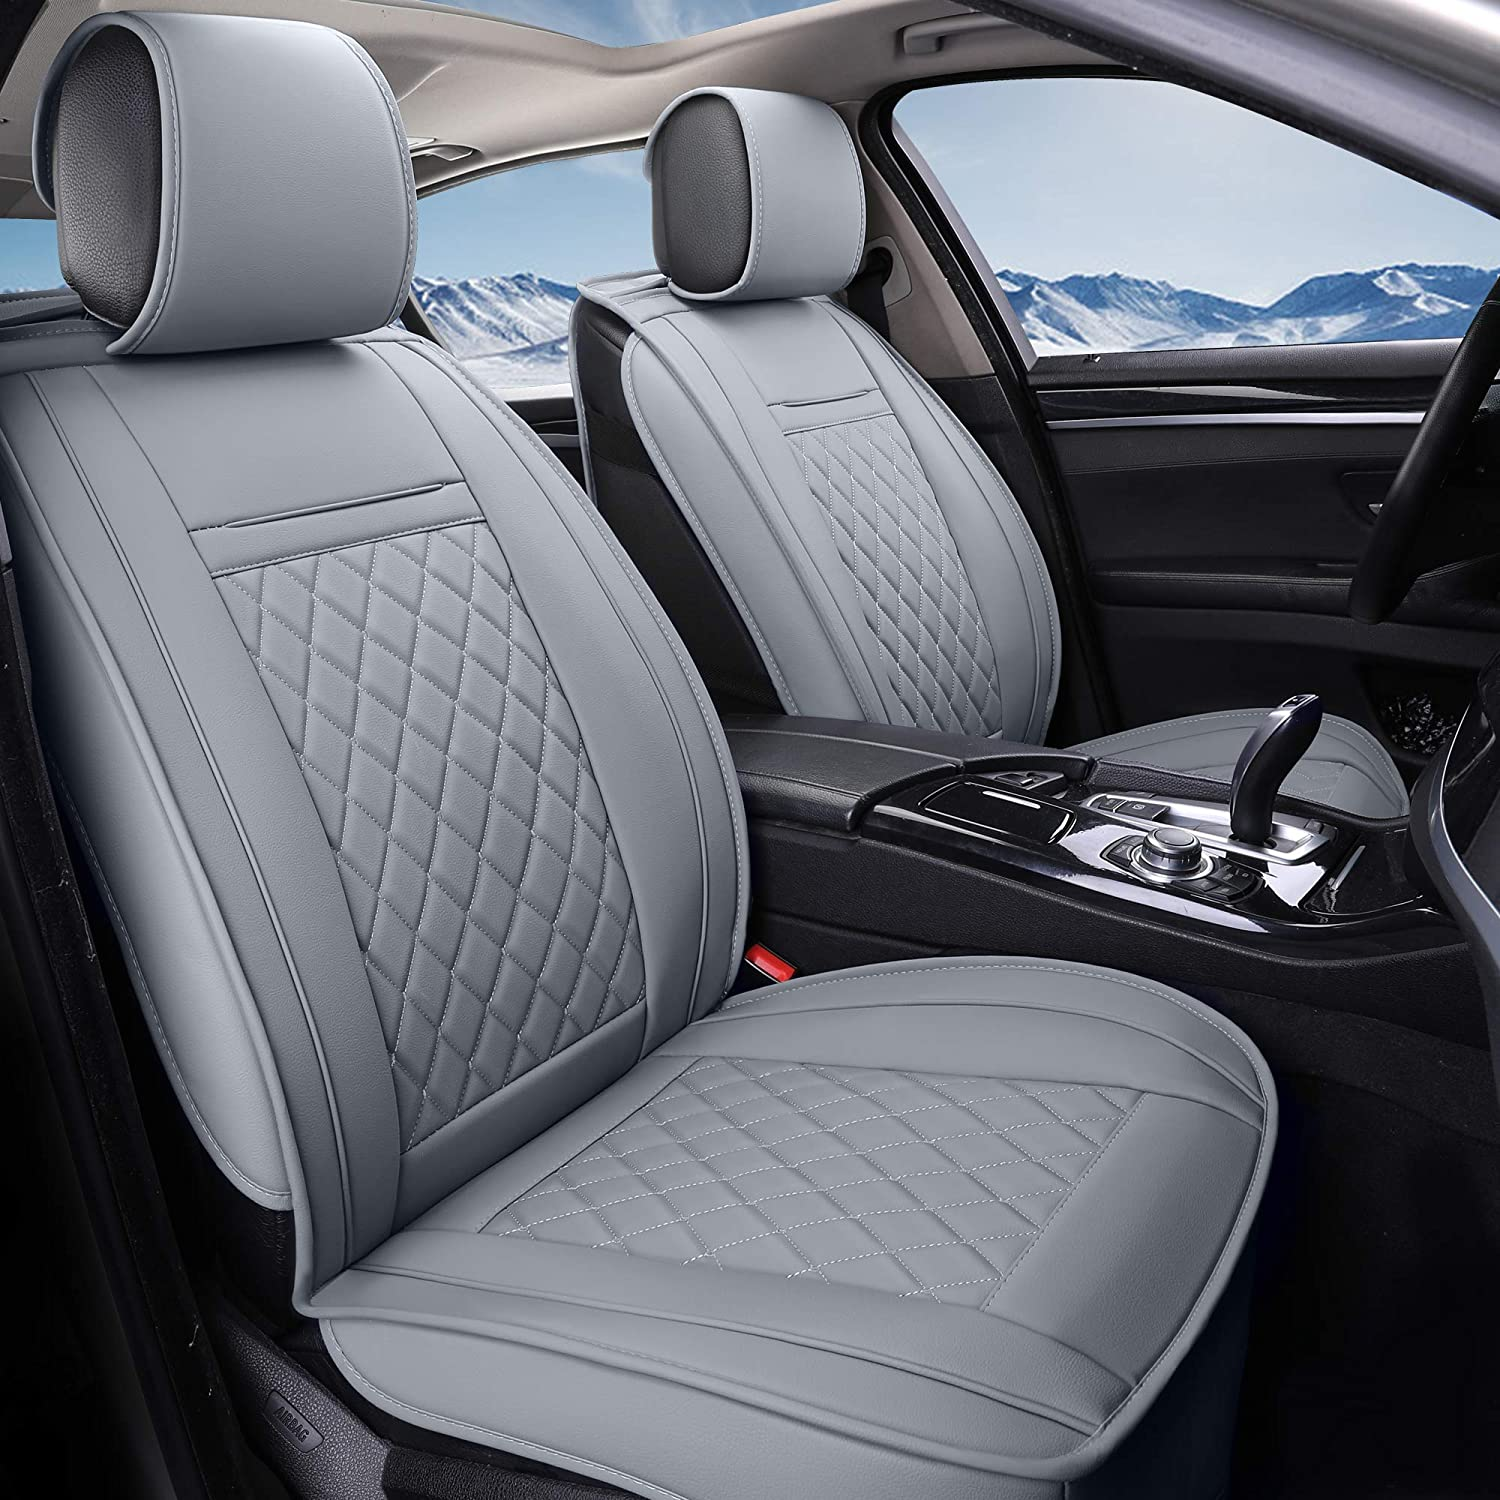 Blue Black Modern Look Pair Front Car Seat Covers for Mitsubishi L200